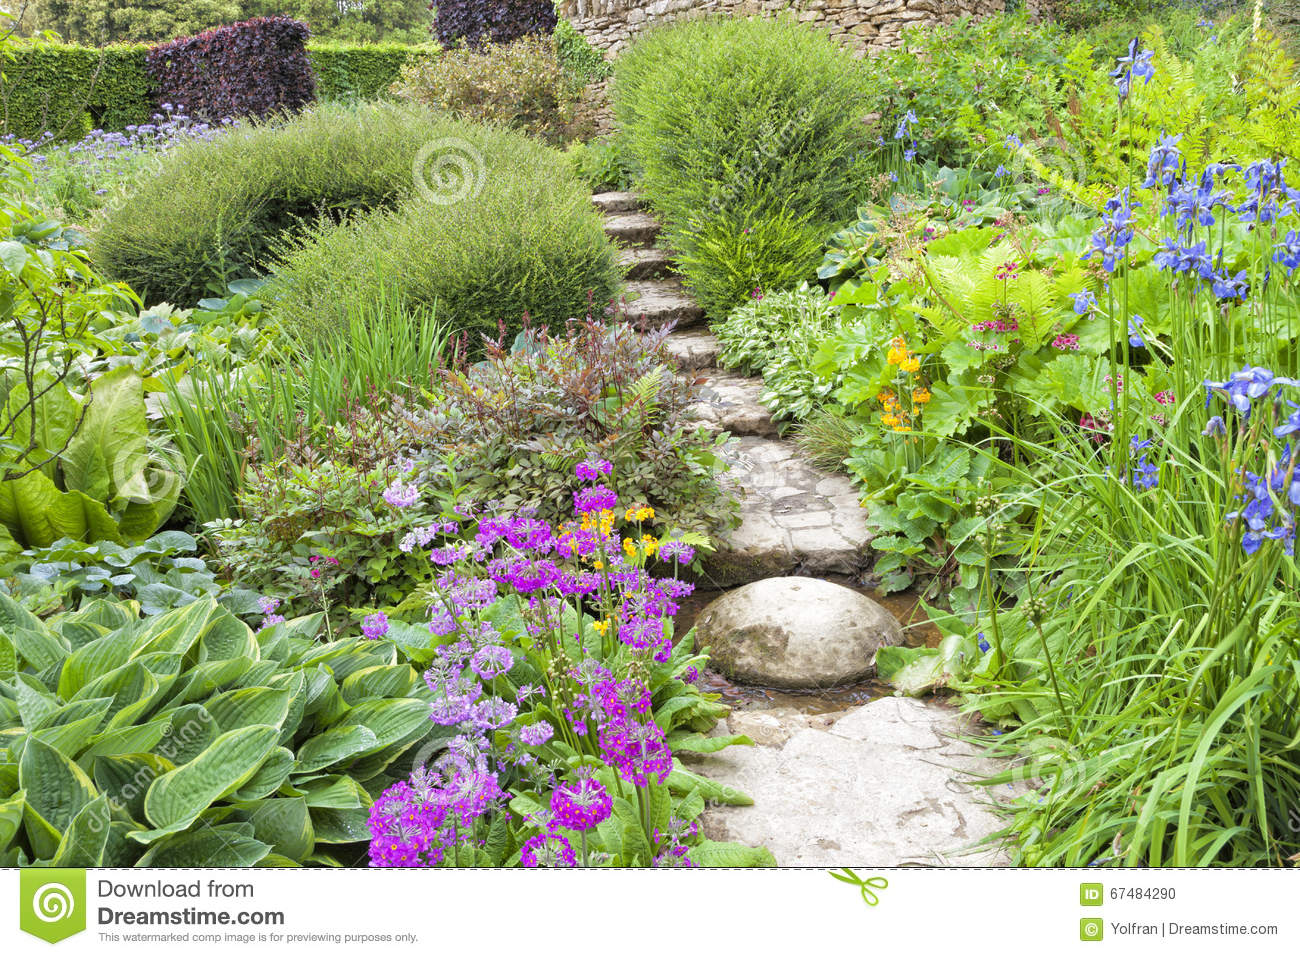 Royalty Free Stock Photo Download Summertime Lush Cottage Garden With Stone Path